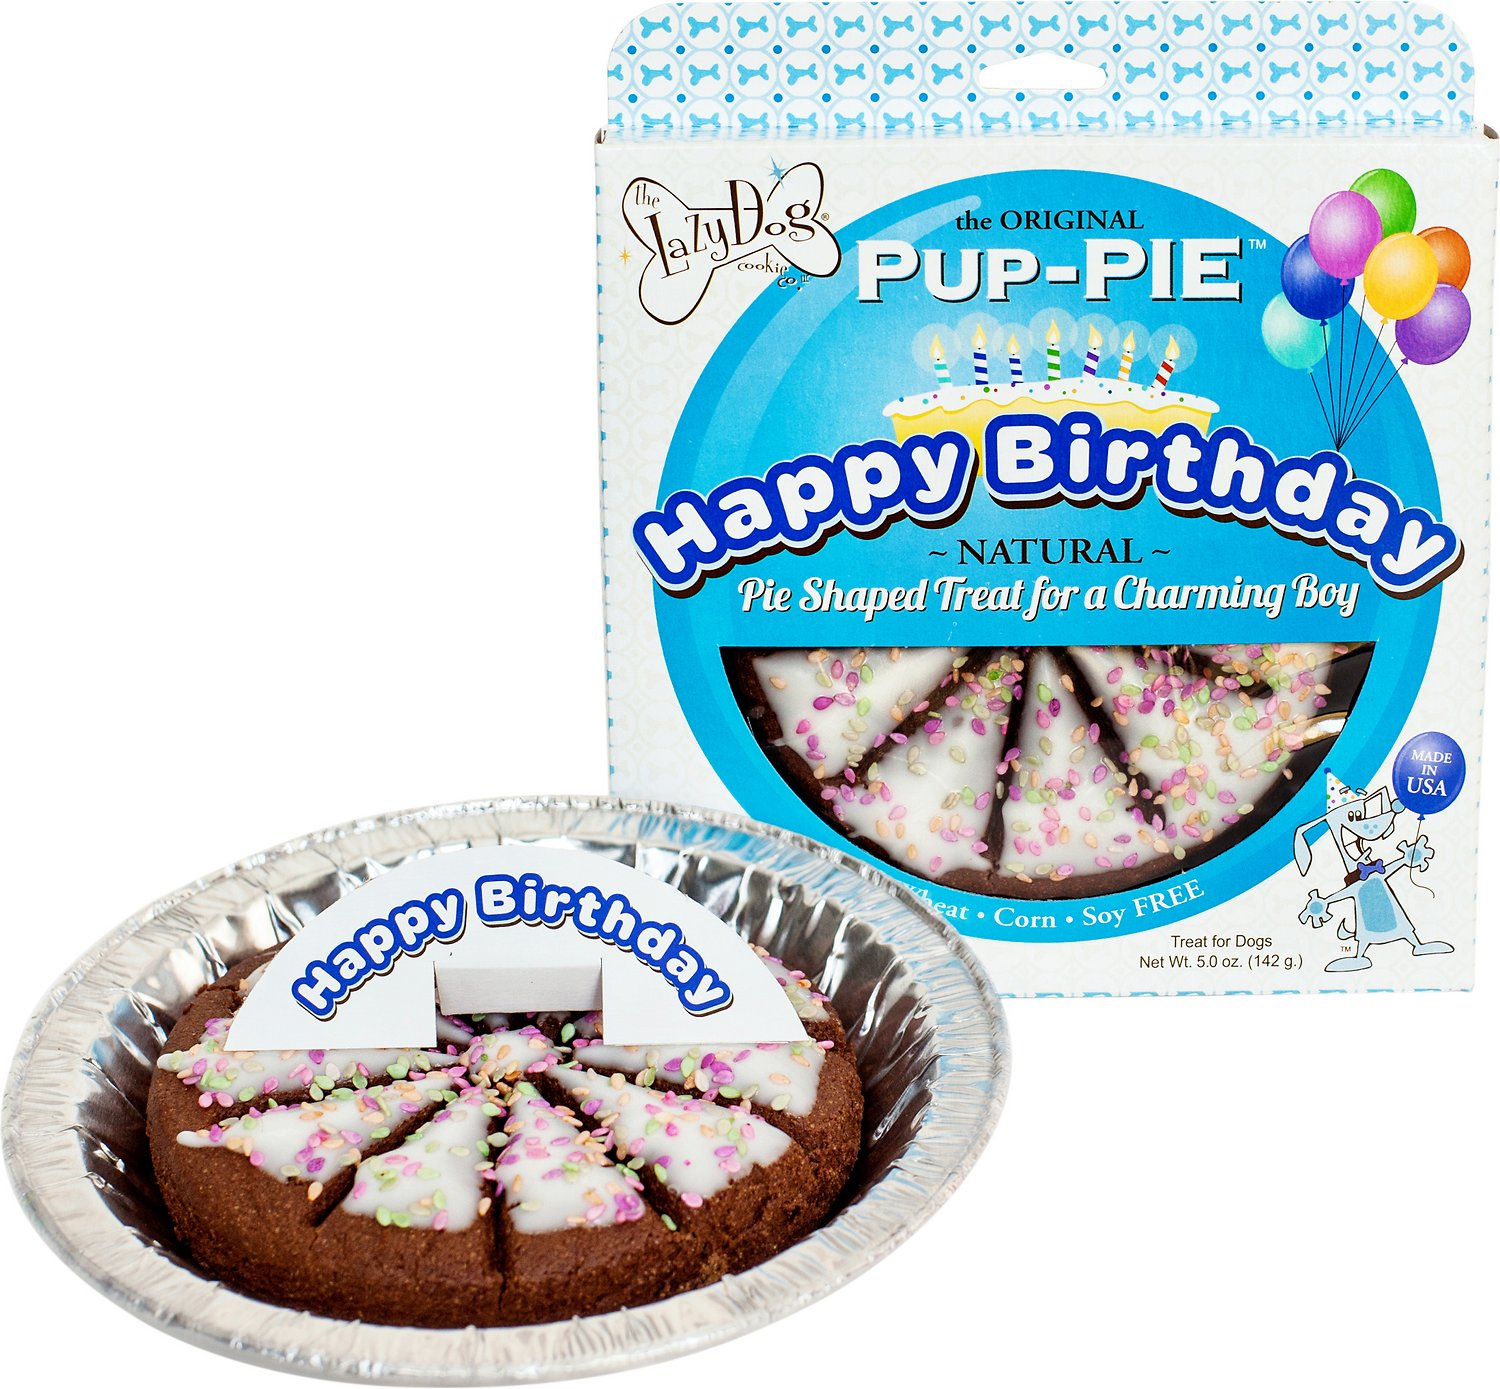 The Lazy Dog Cookie Co. Happy Birthday Pup-PIE Dog Treat, Boy (Weights: 5ounces) Image